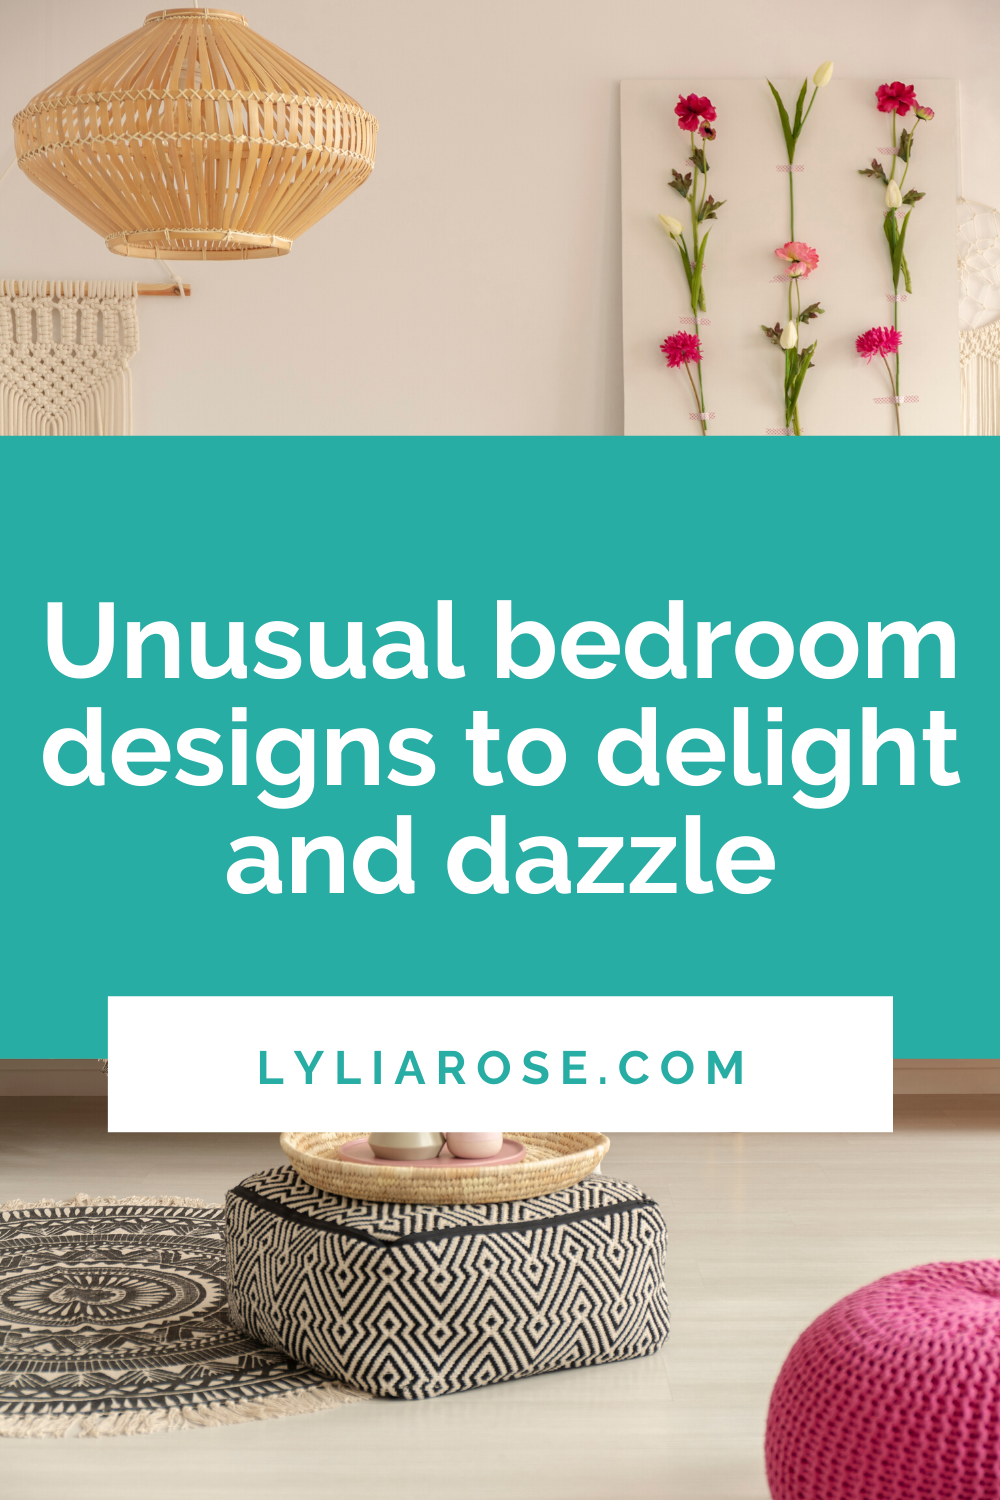 Unusual bedroom designs to delight and dazzle